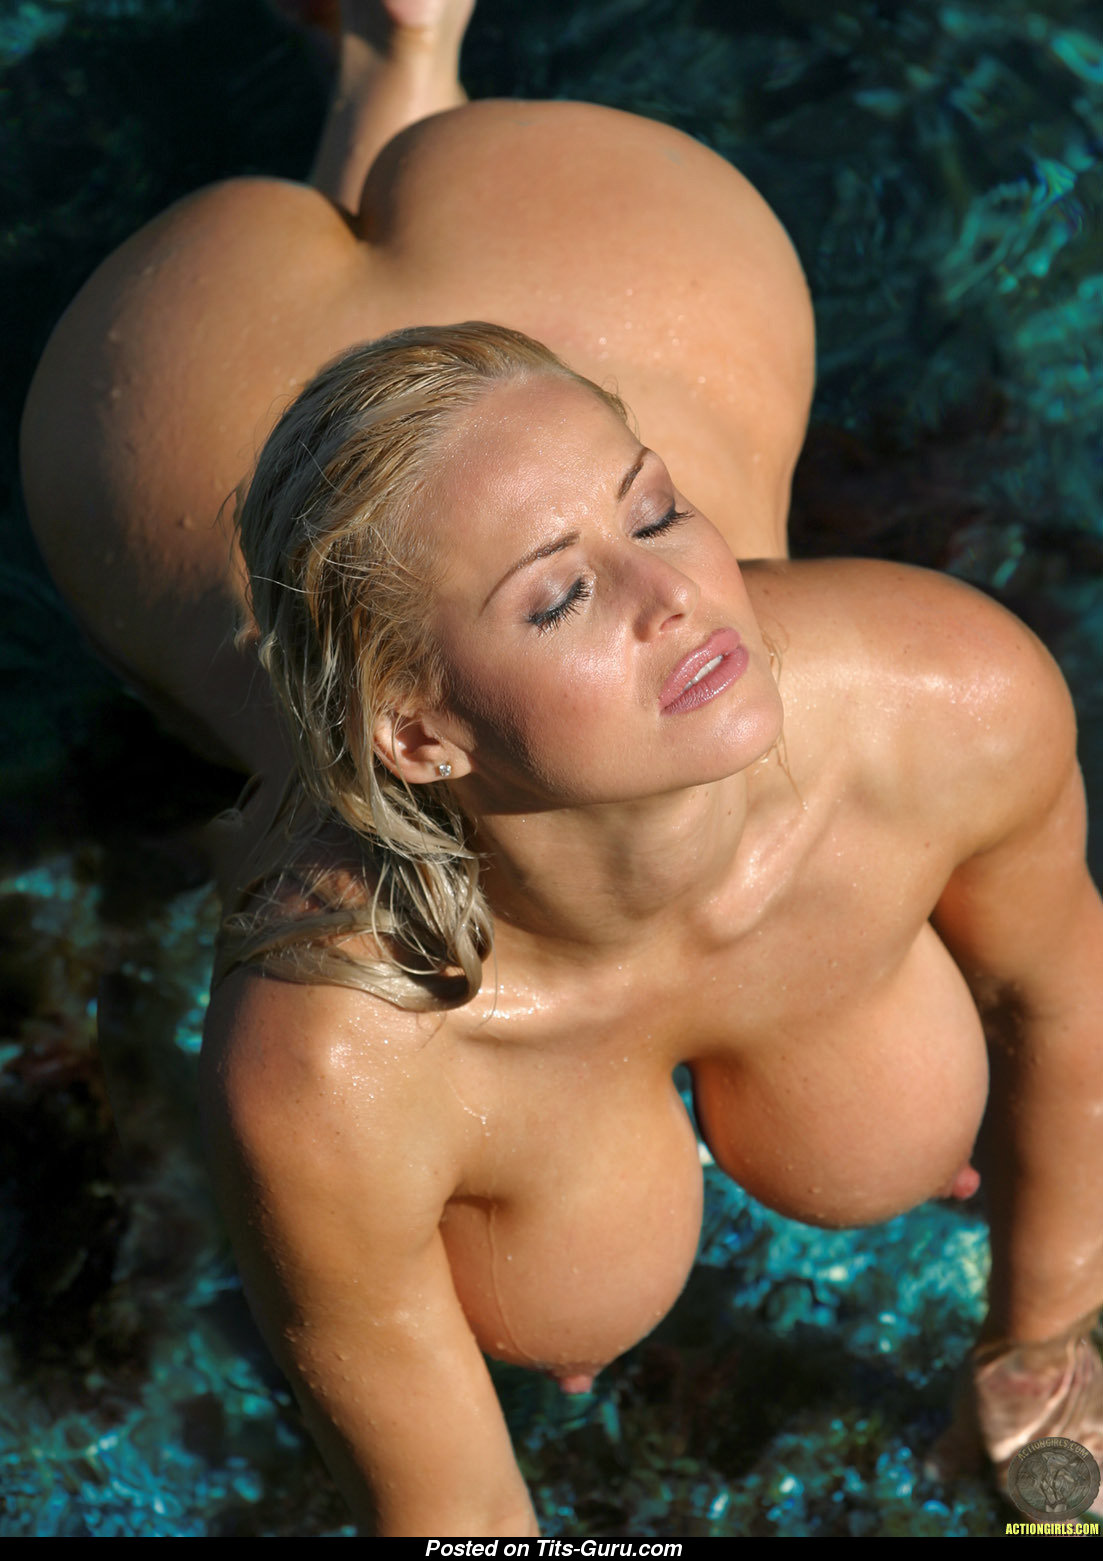 sexy wet naked blonde with big tots and big nipples pic | 31.01.2018